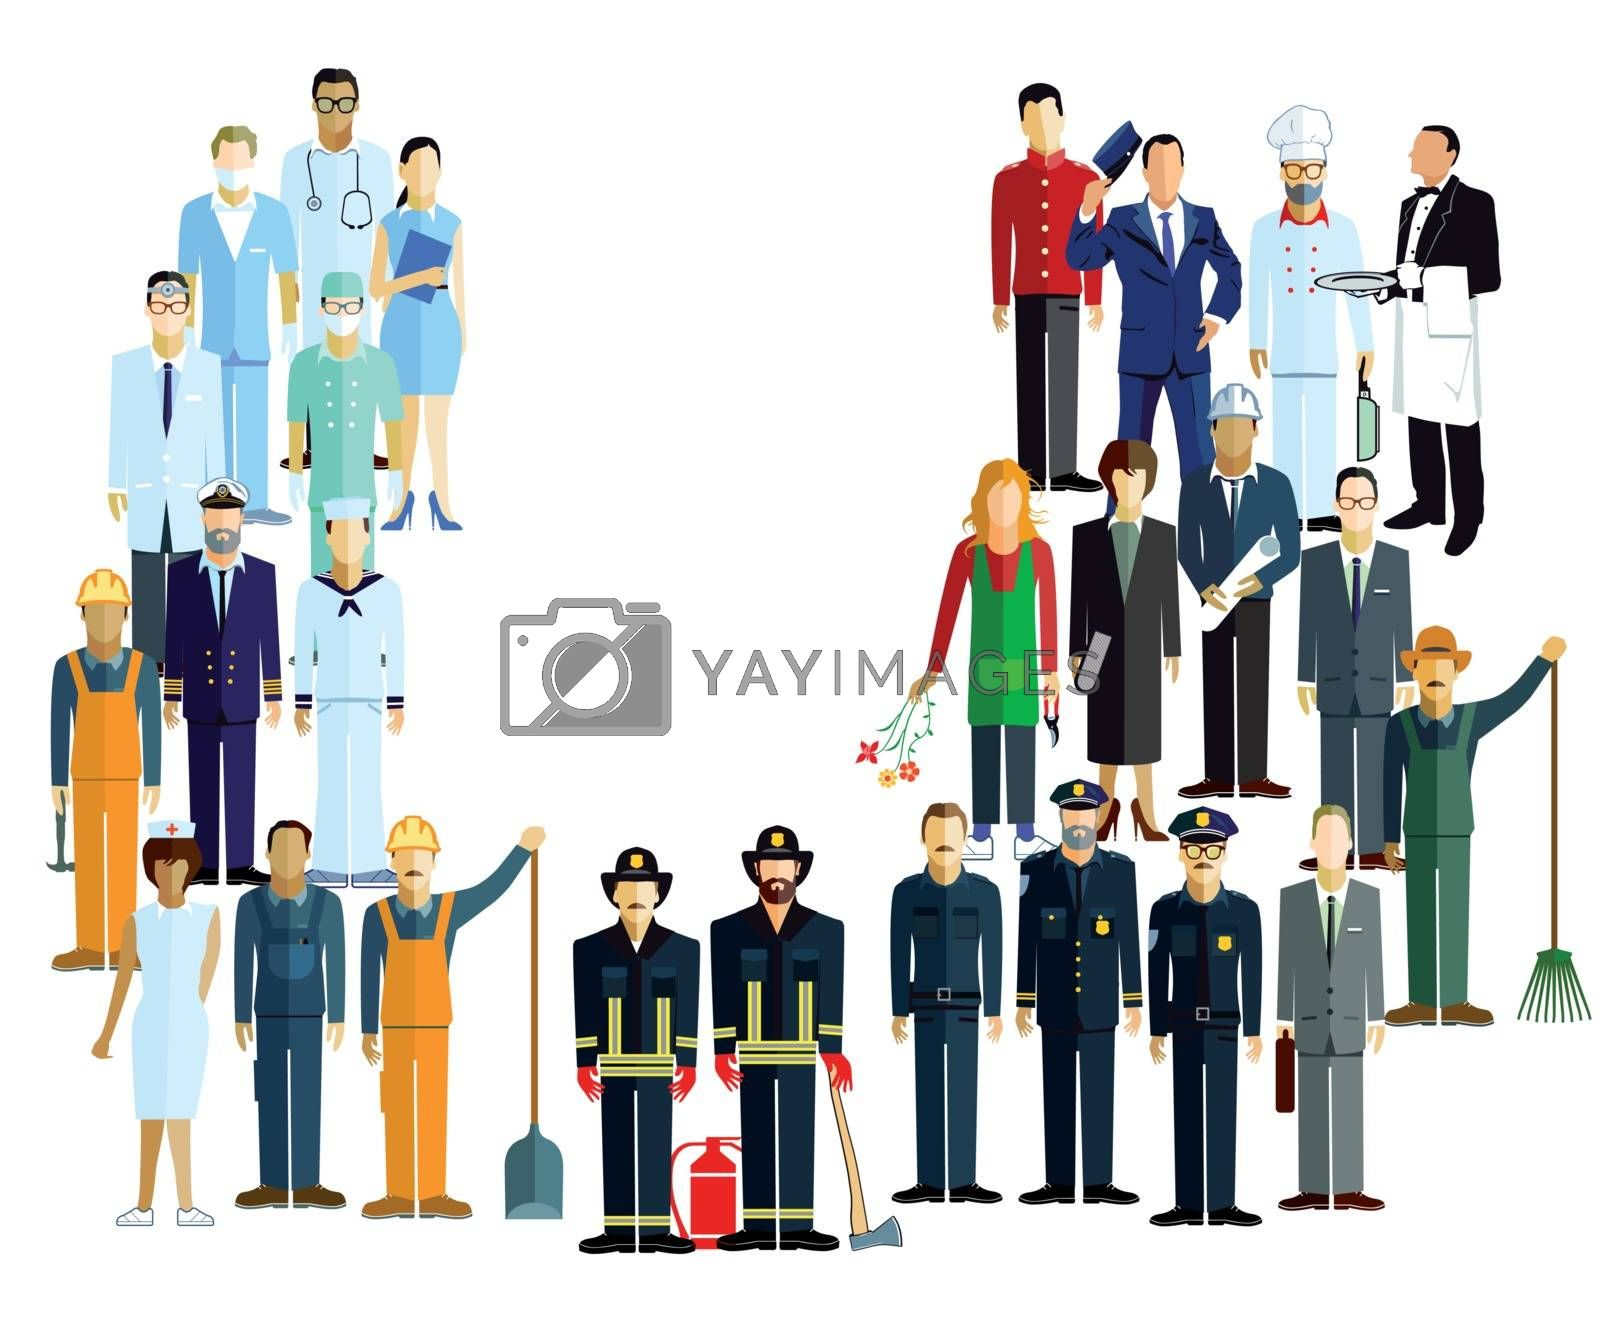 employees, workers, profession illustration